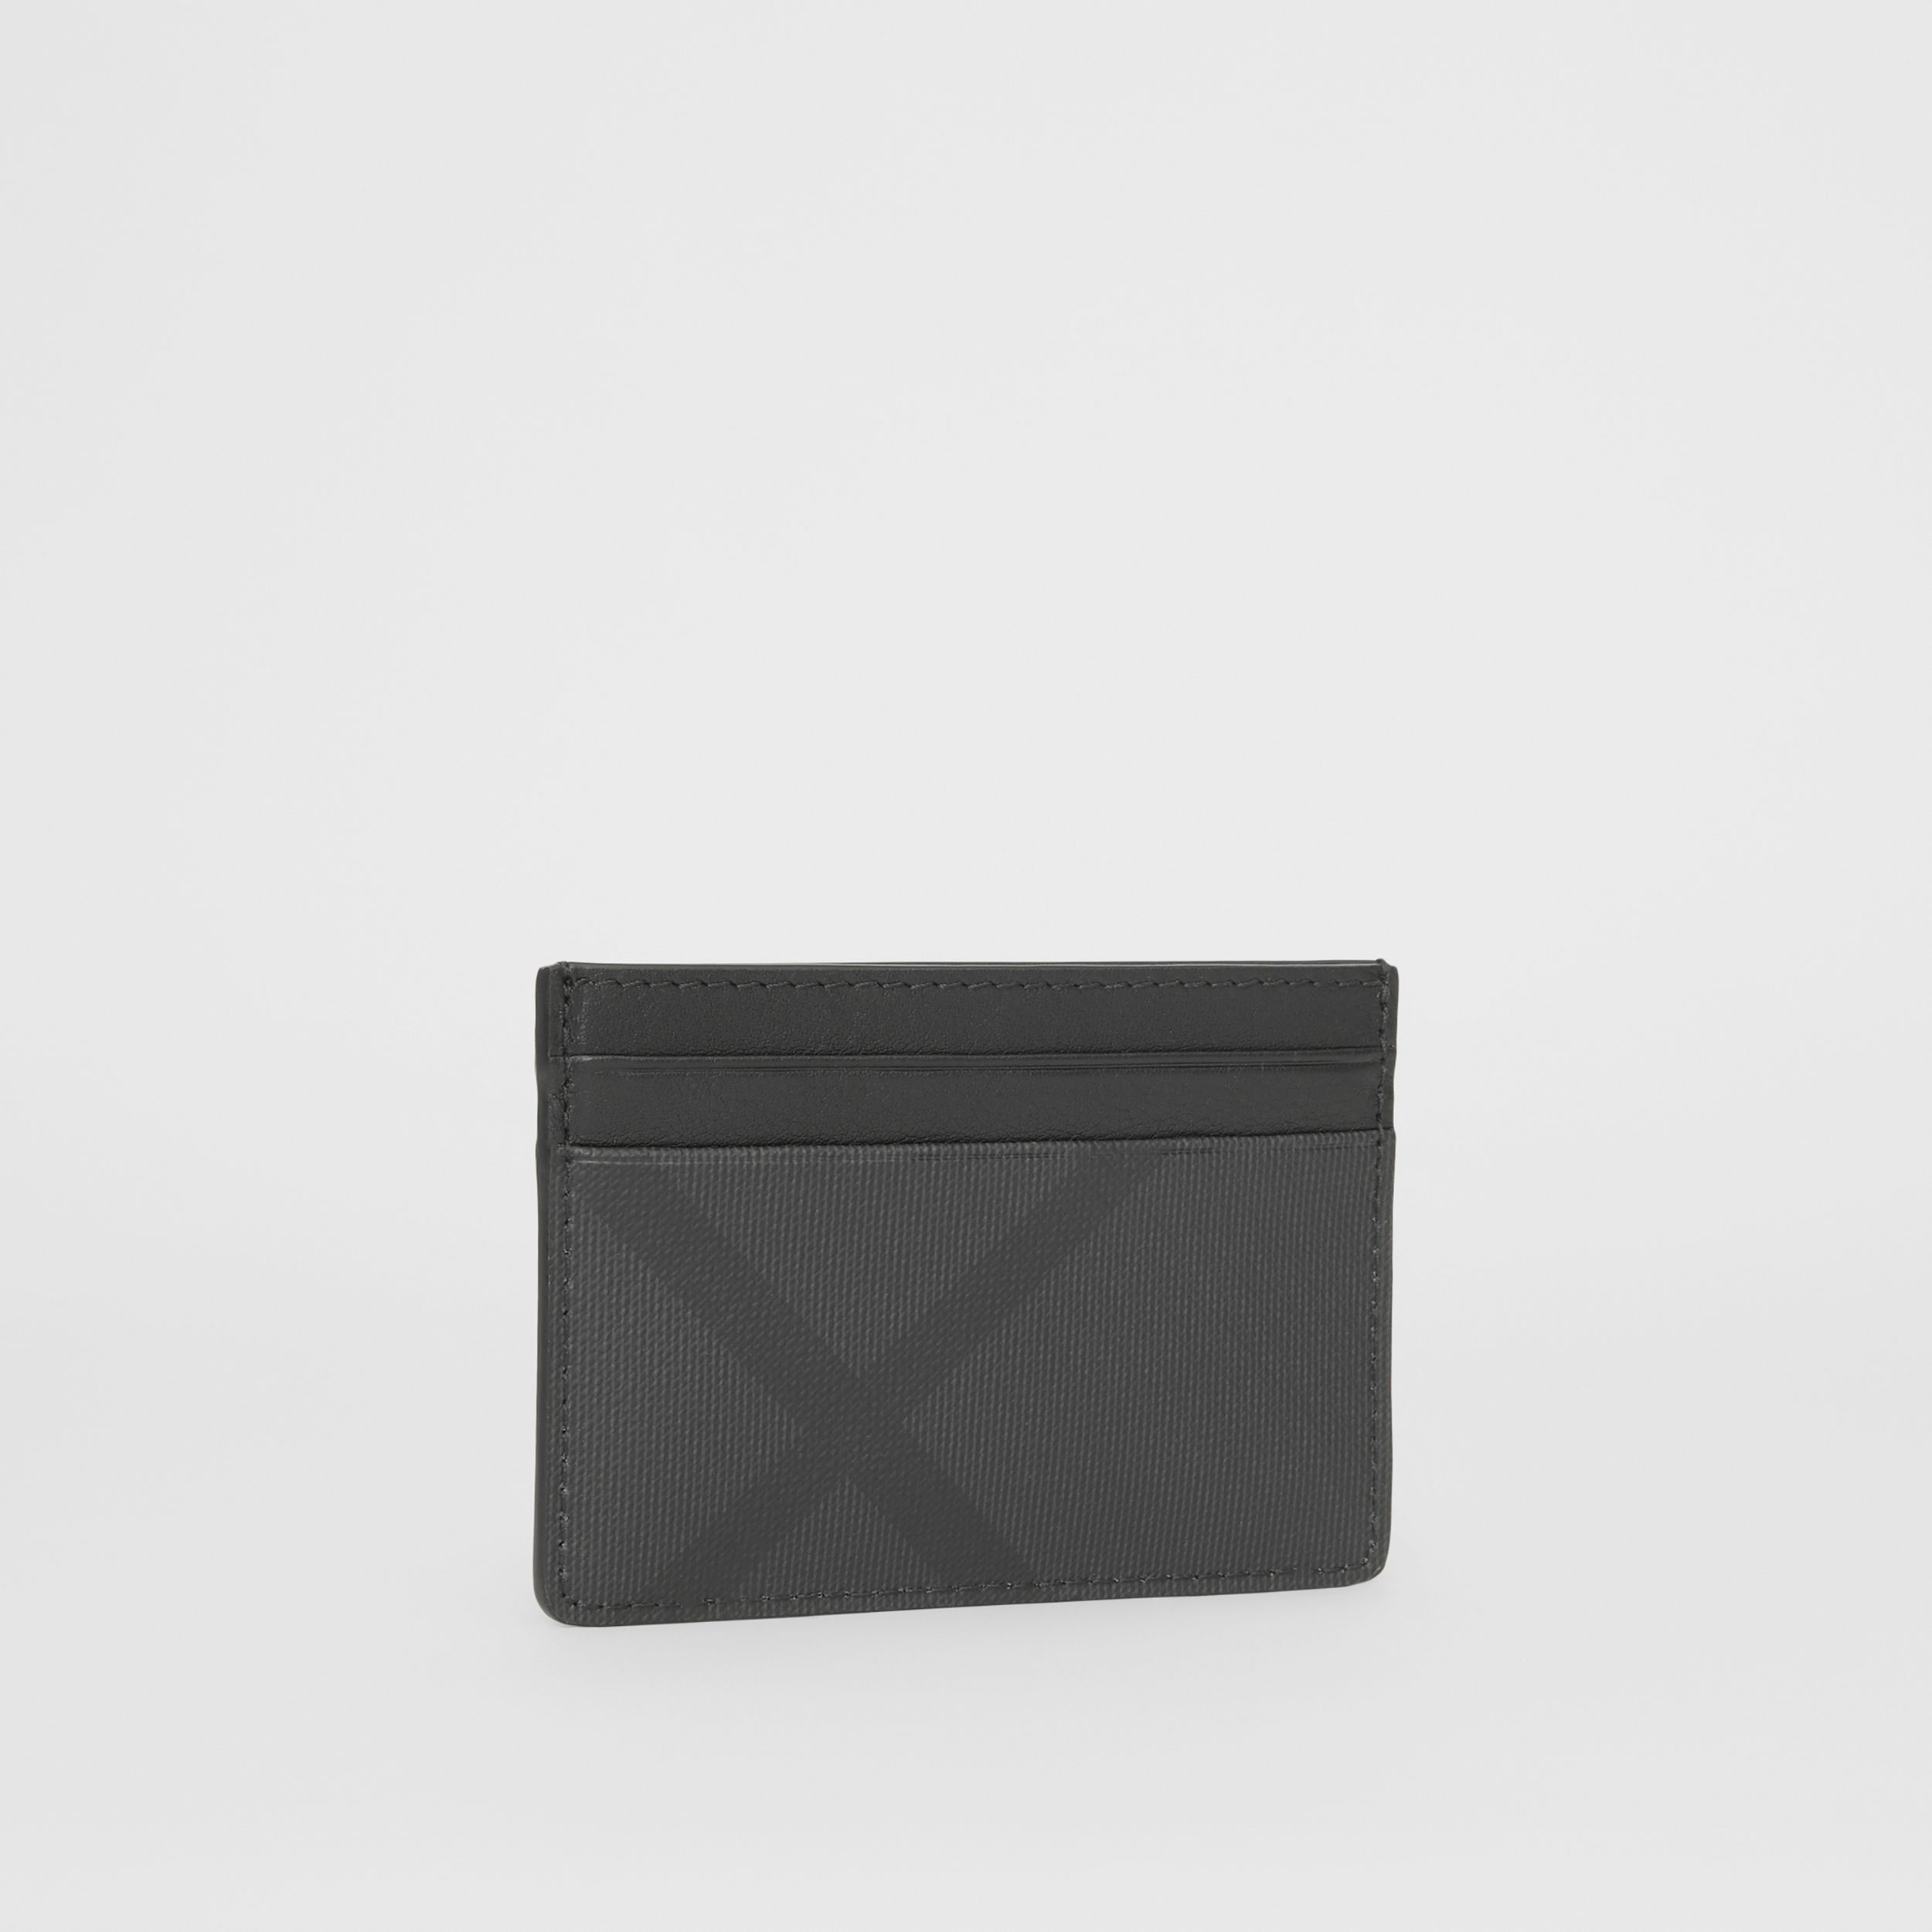 London Check and Leather Card Case in Dark Charcoal - Men | Burberry Australia - 4